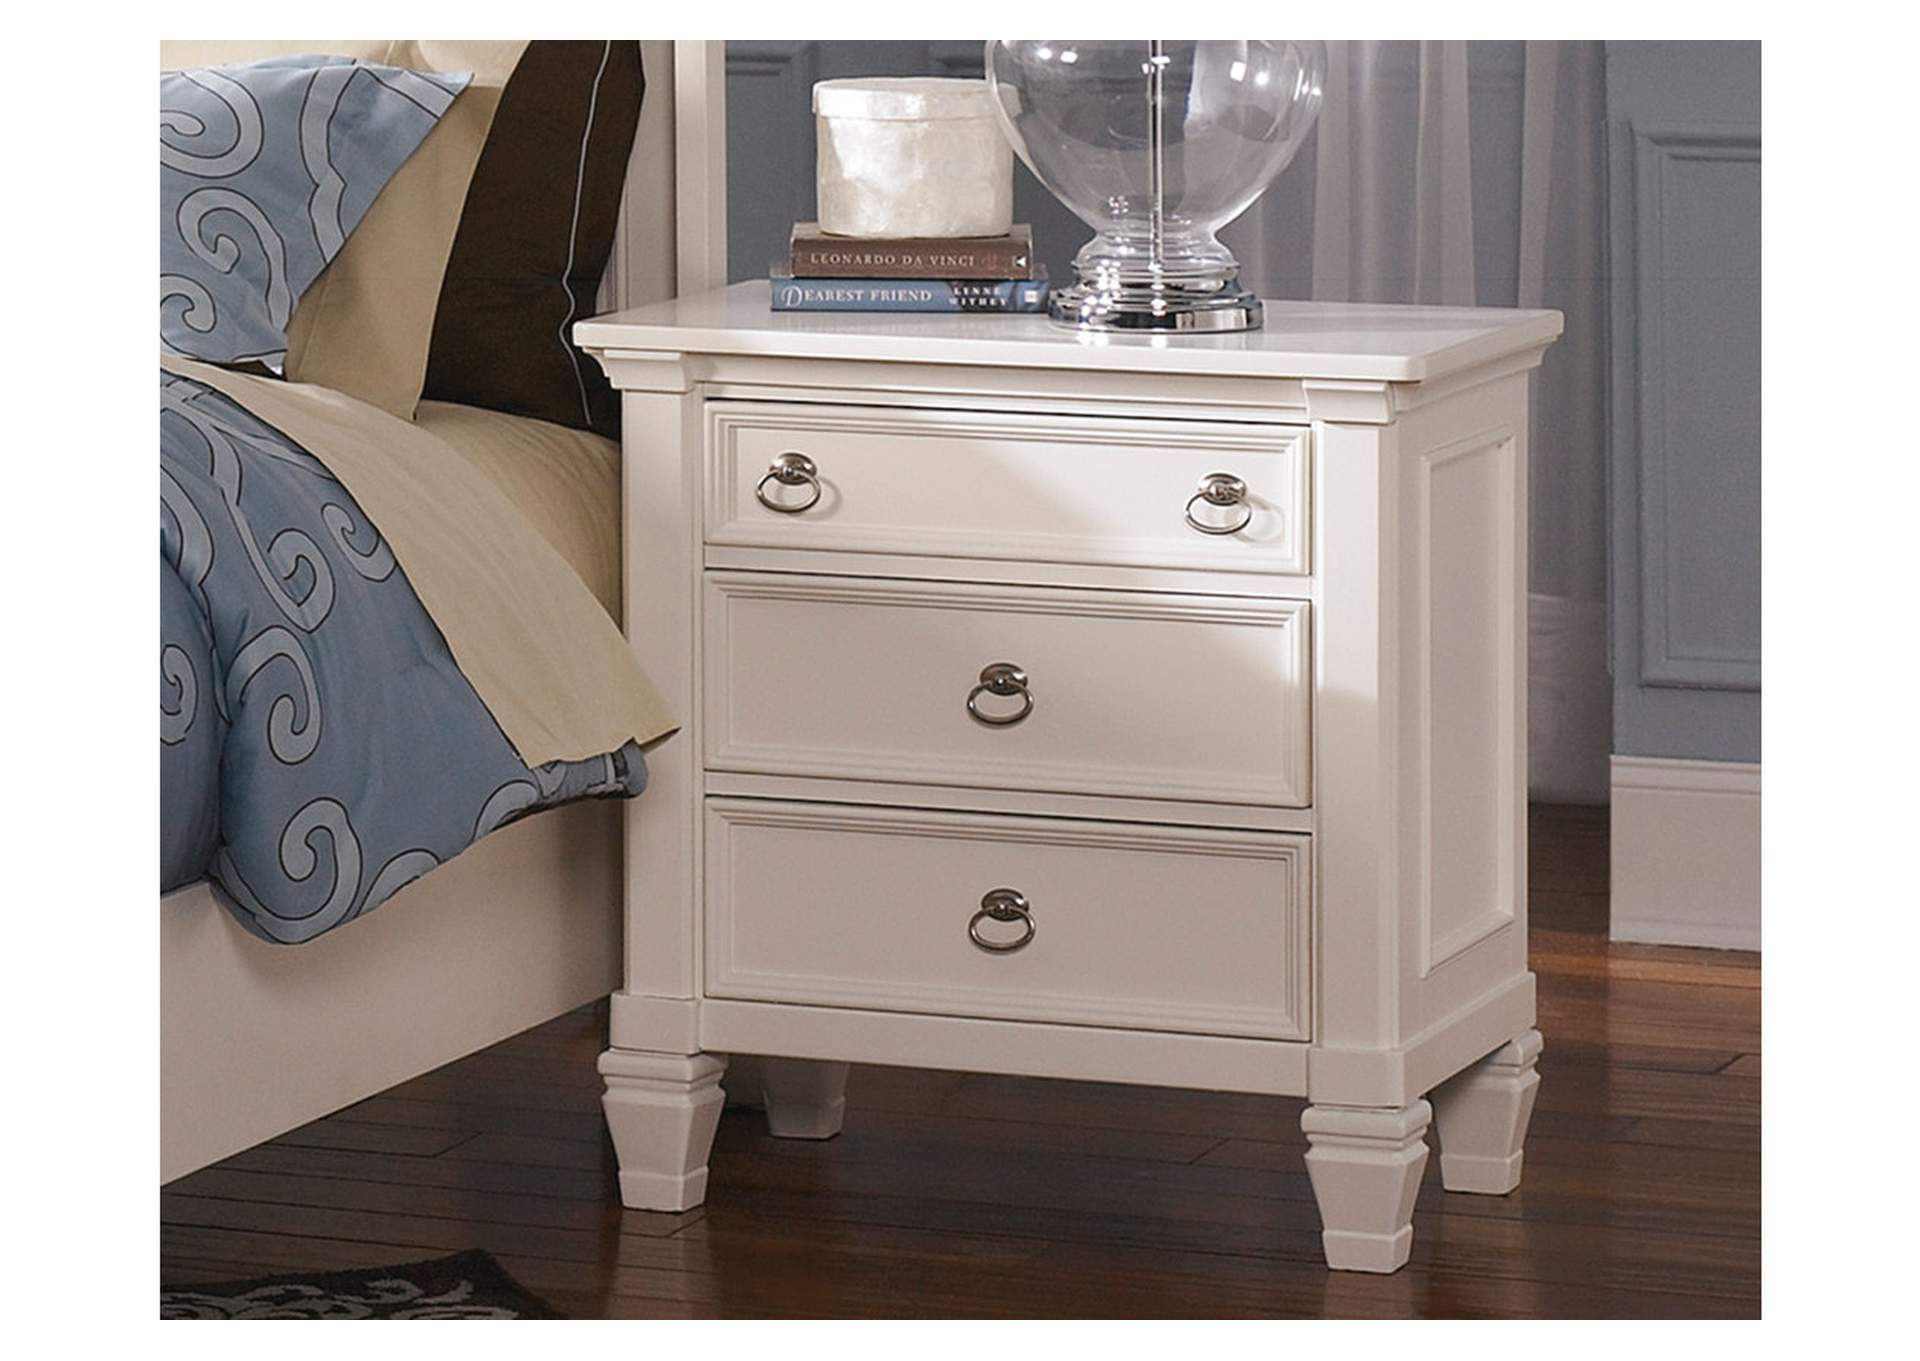 Prentice White Three Drawer Nightstand,Direct To Consumer Express